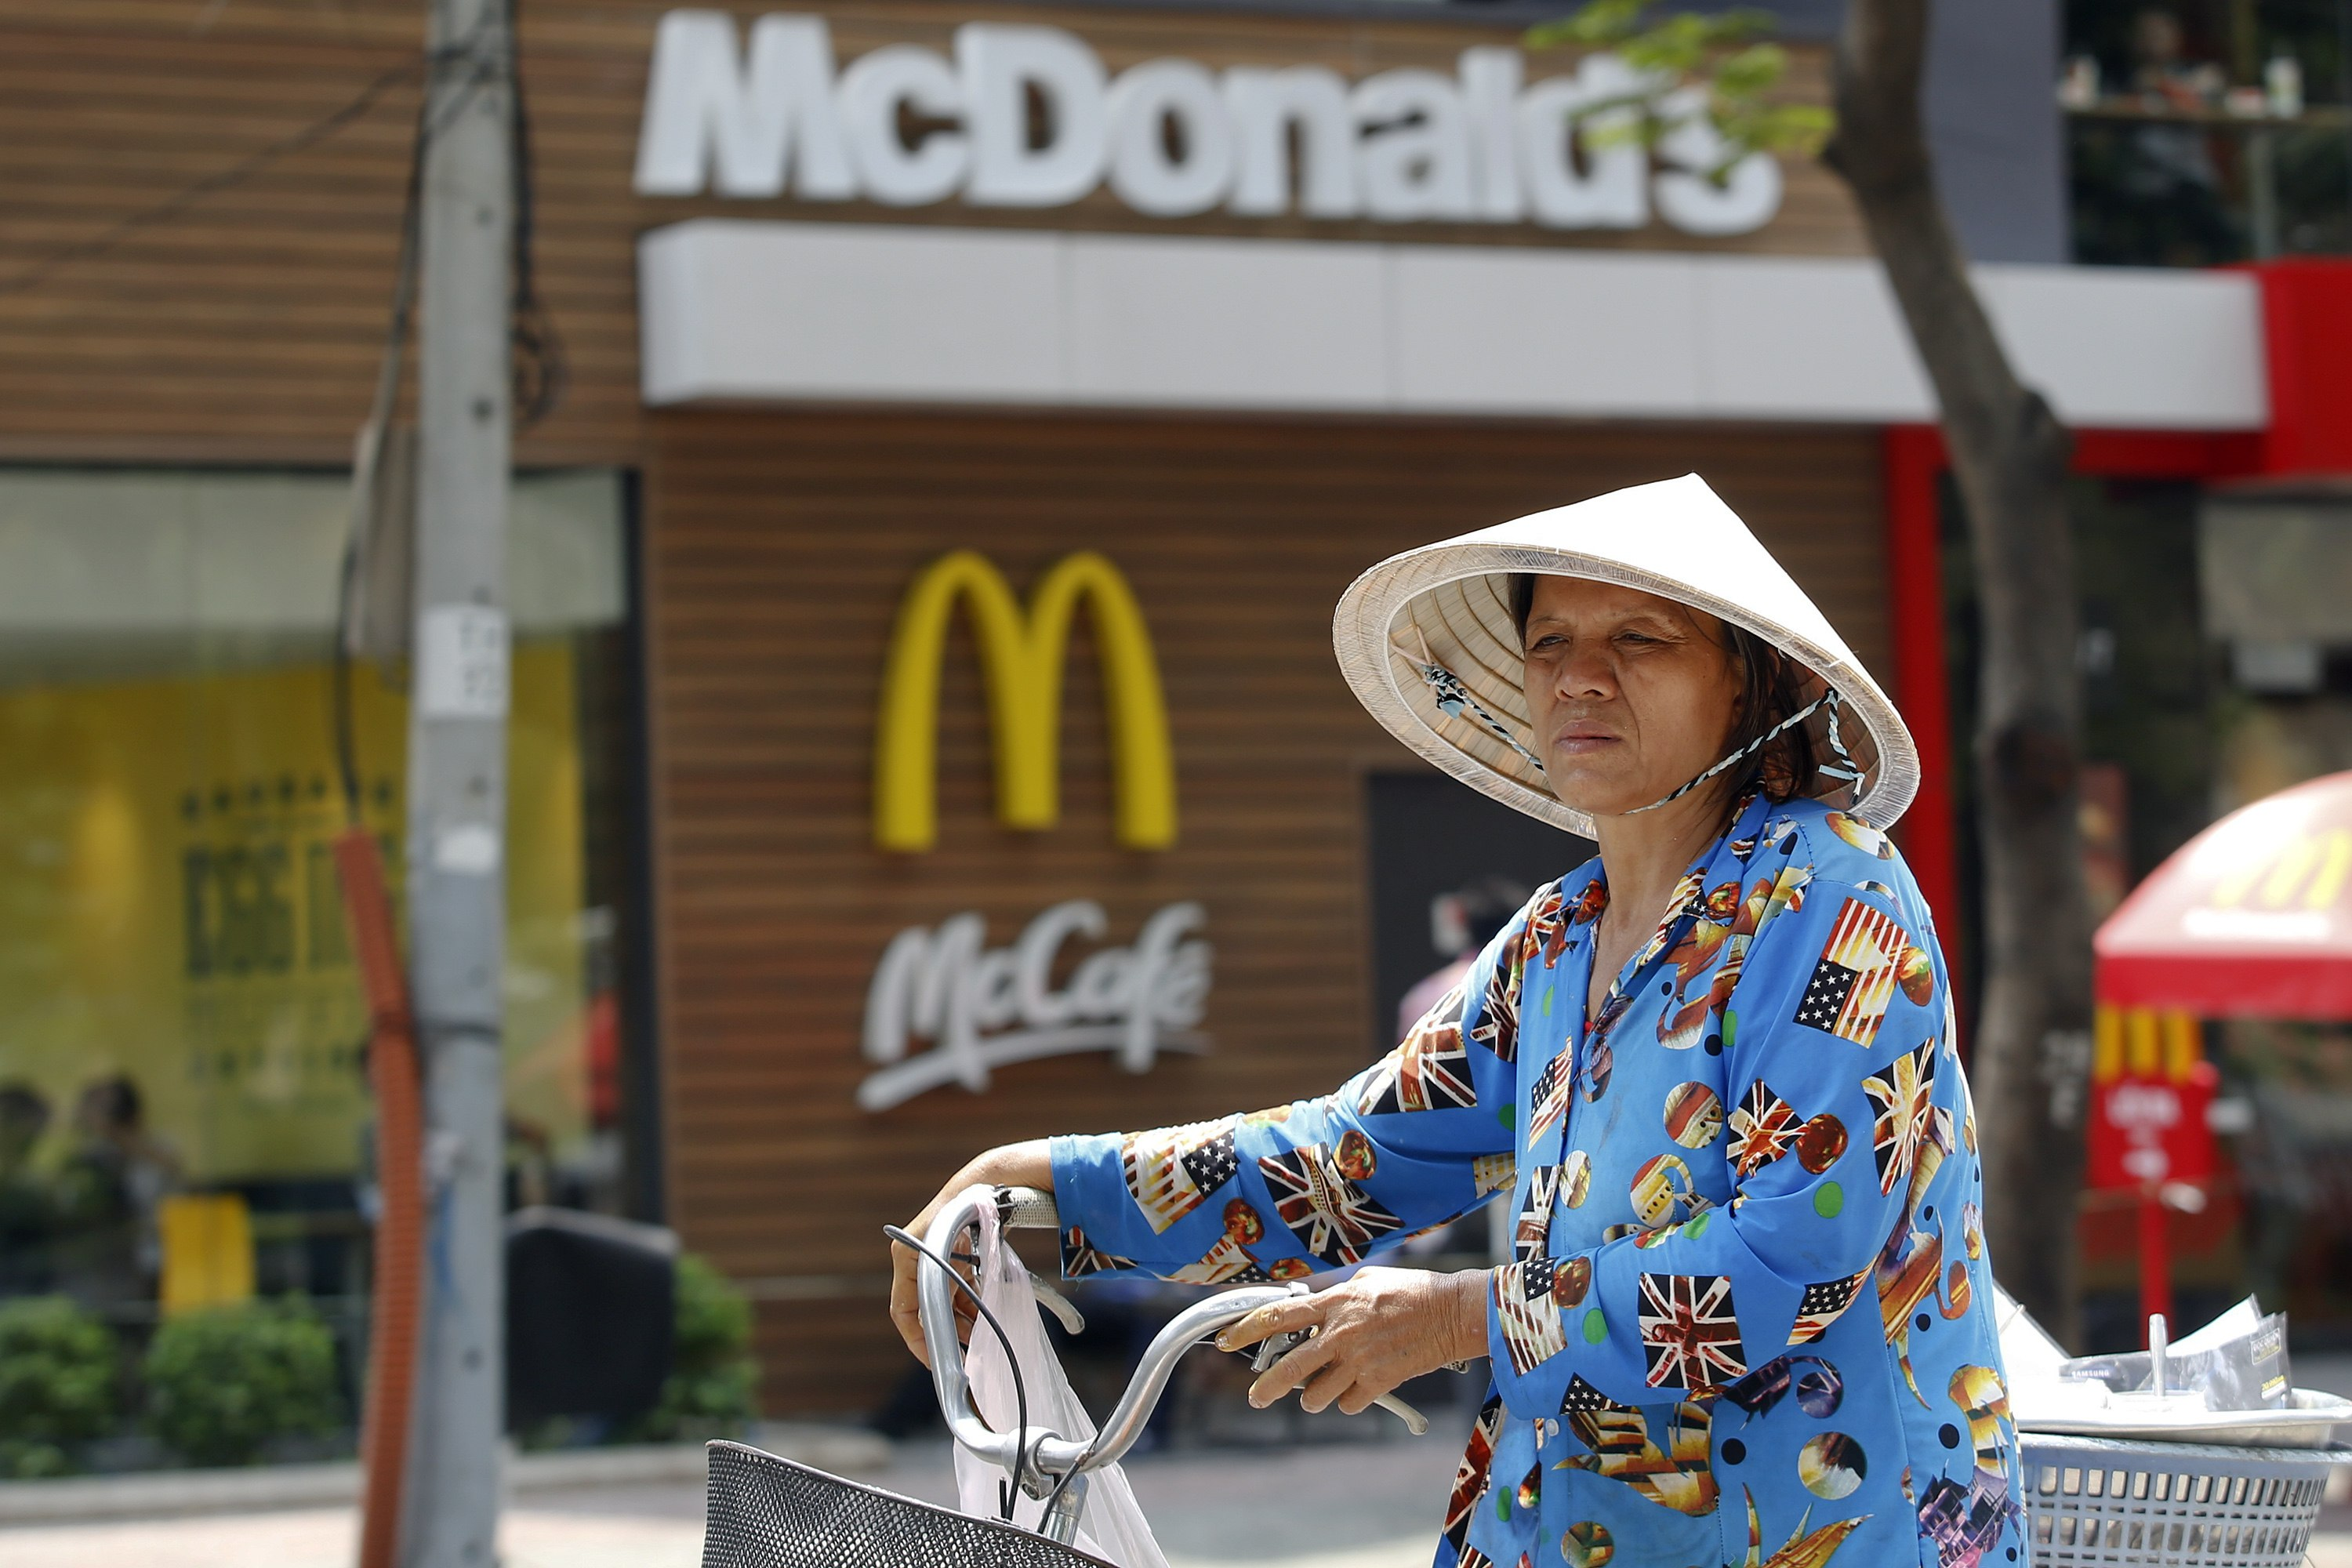 After cashing in on 'golden demographics' Vietnam braces for grayer times